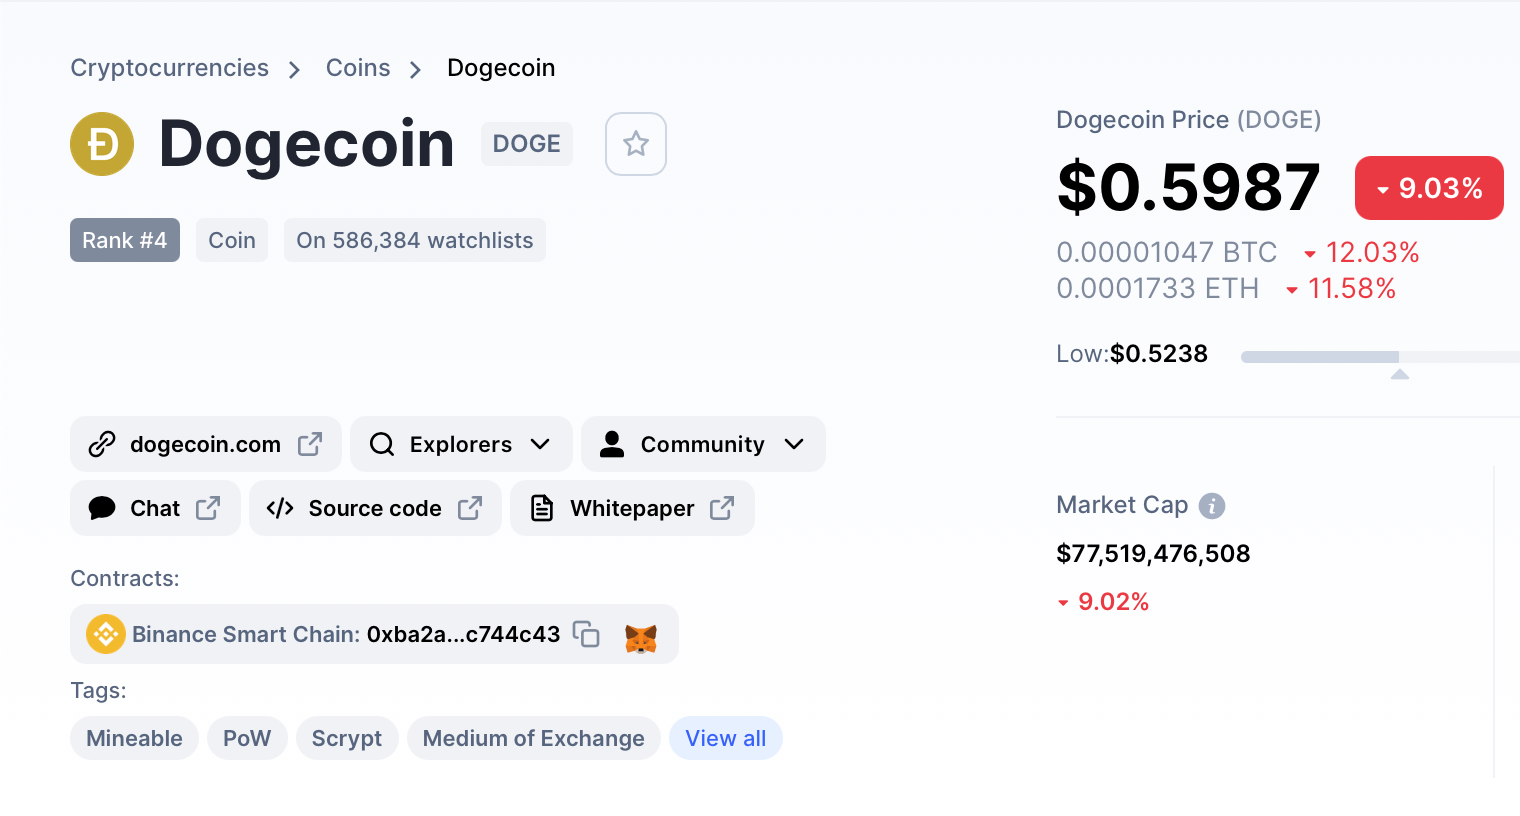 Dogecoin Is Now the Fourth Largest Cryptocurrency by Market Cap